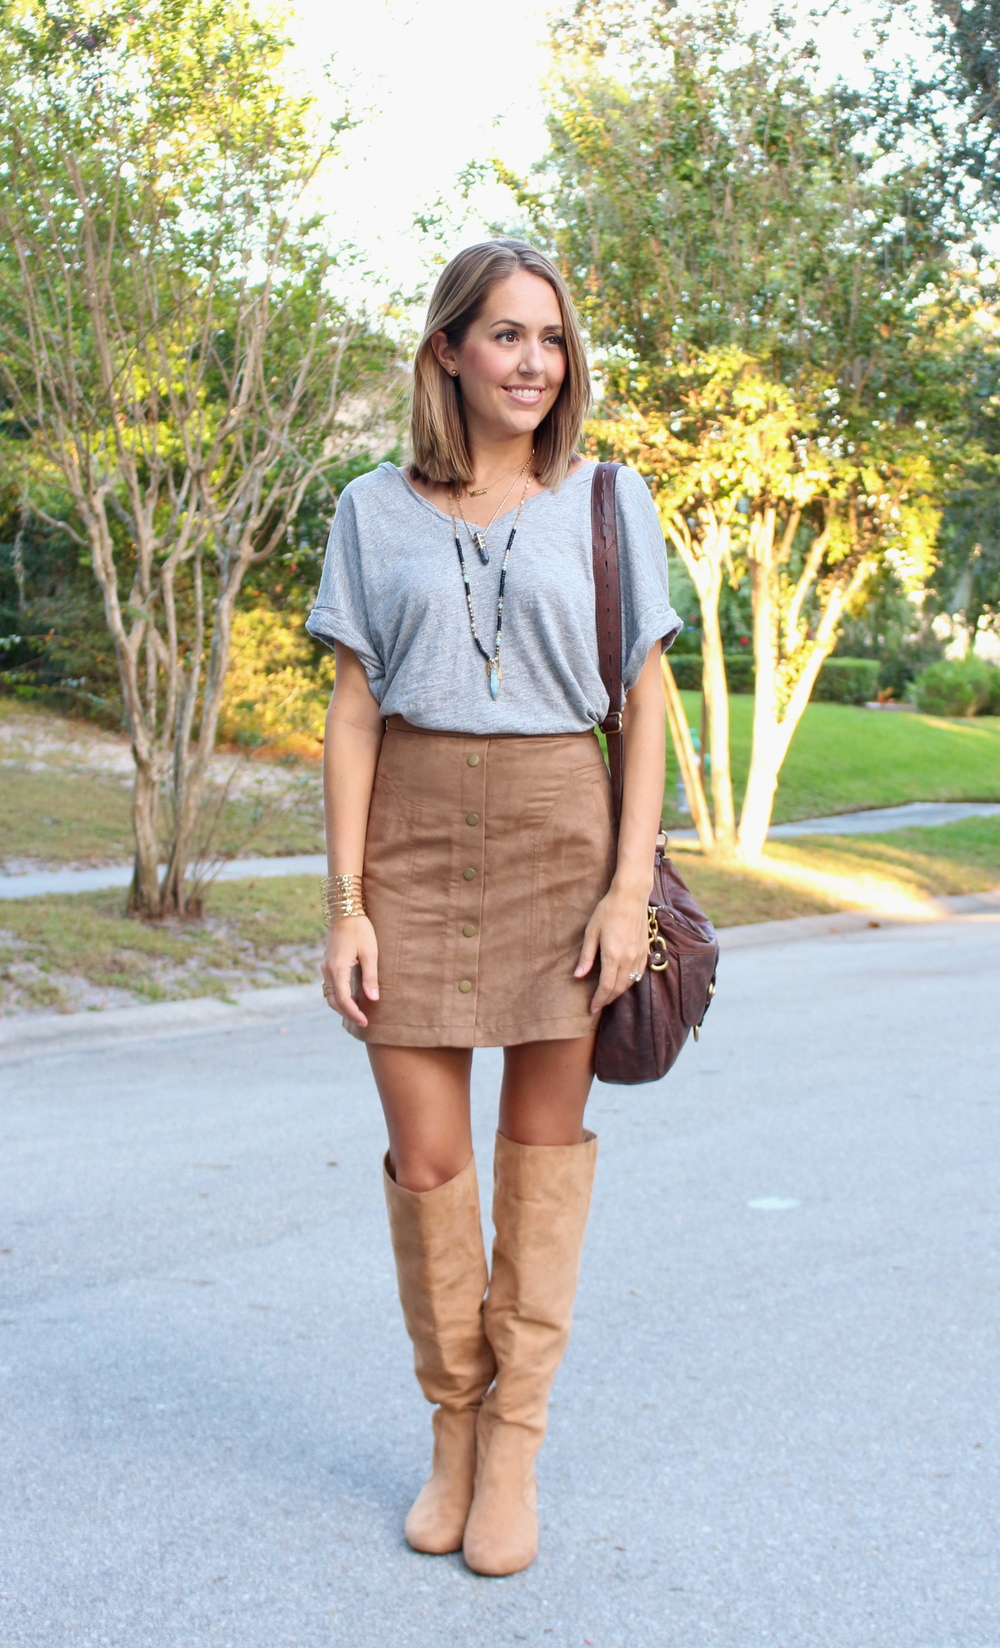 Gray top, suede skirt, suede boots